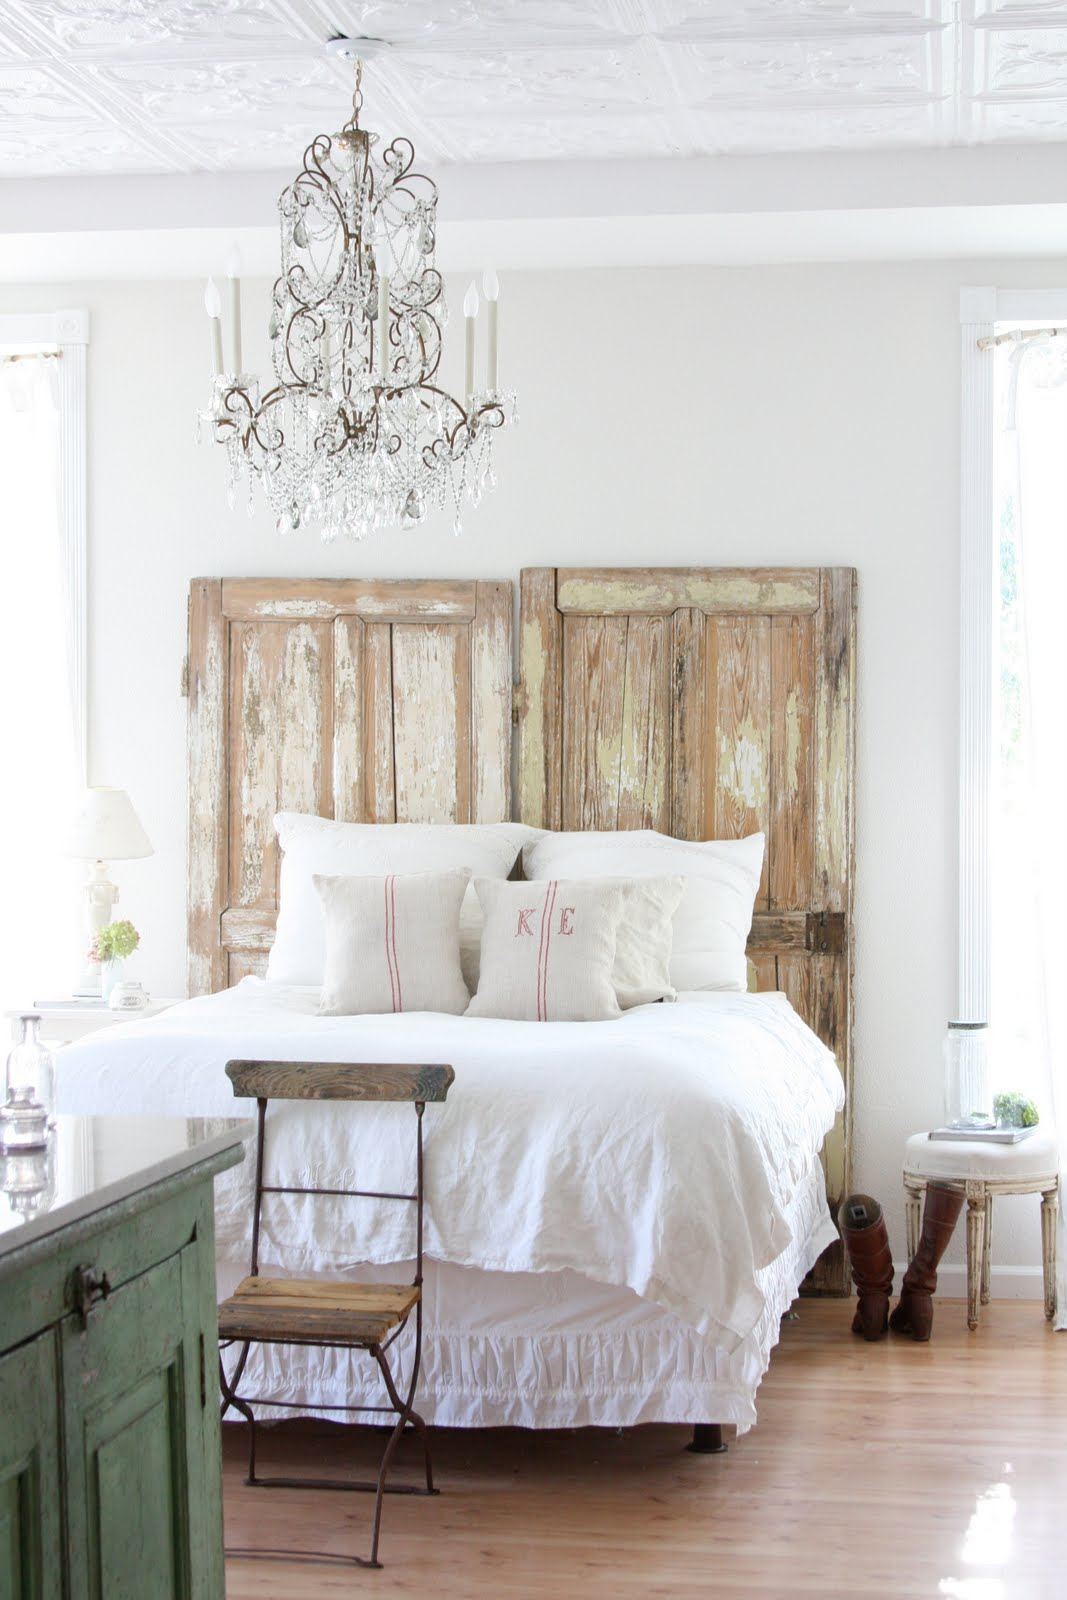 16 Old Doors Used As Dramatic Headboard - Decoholic